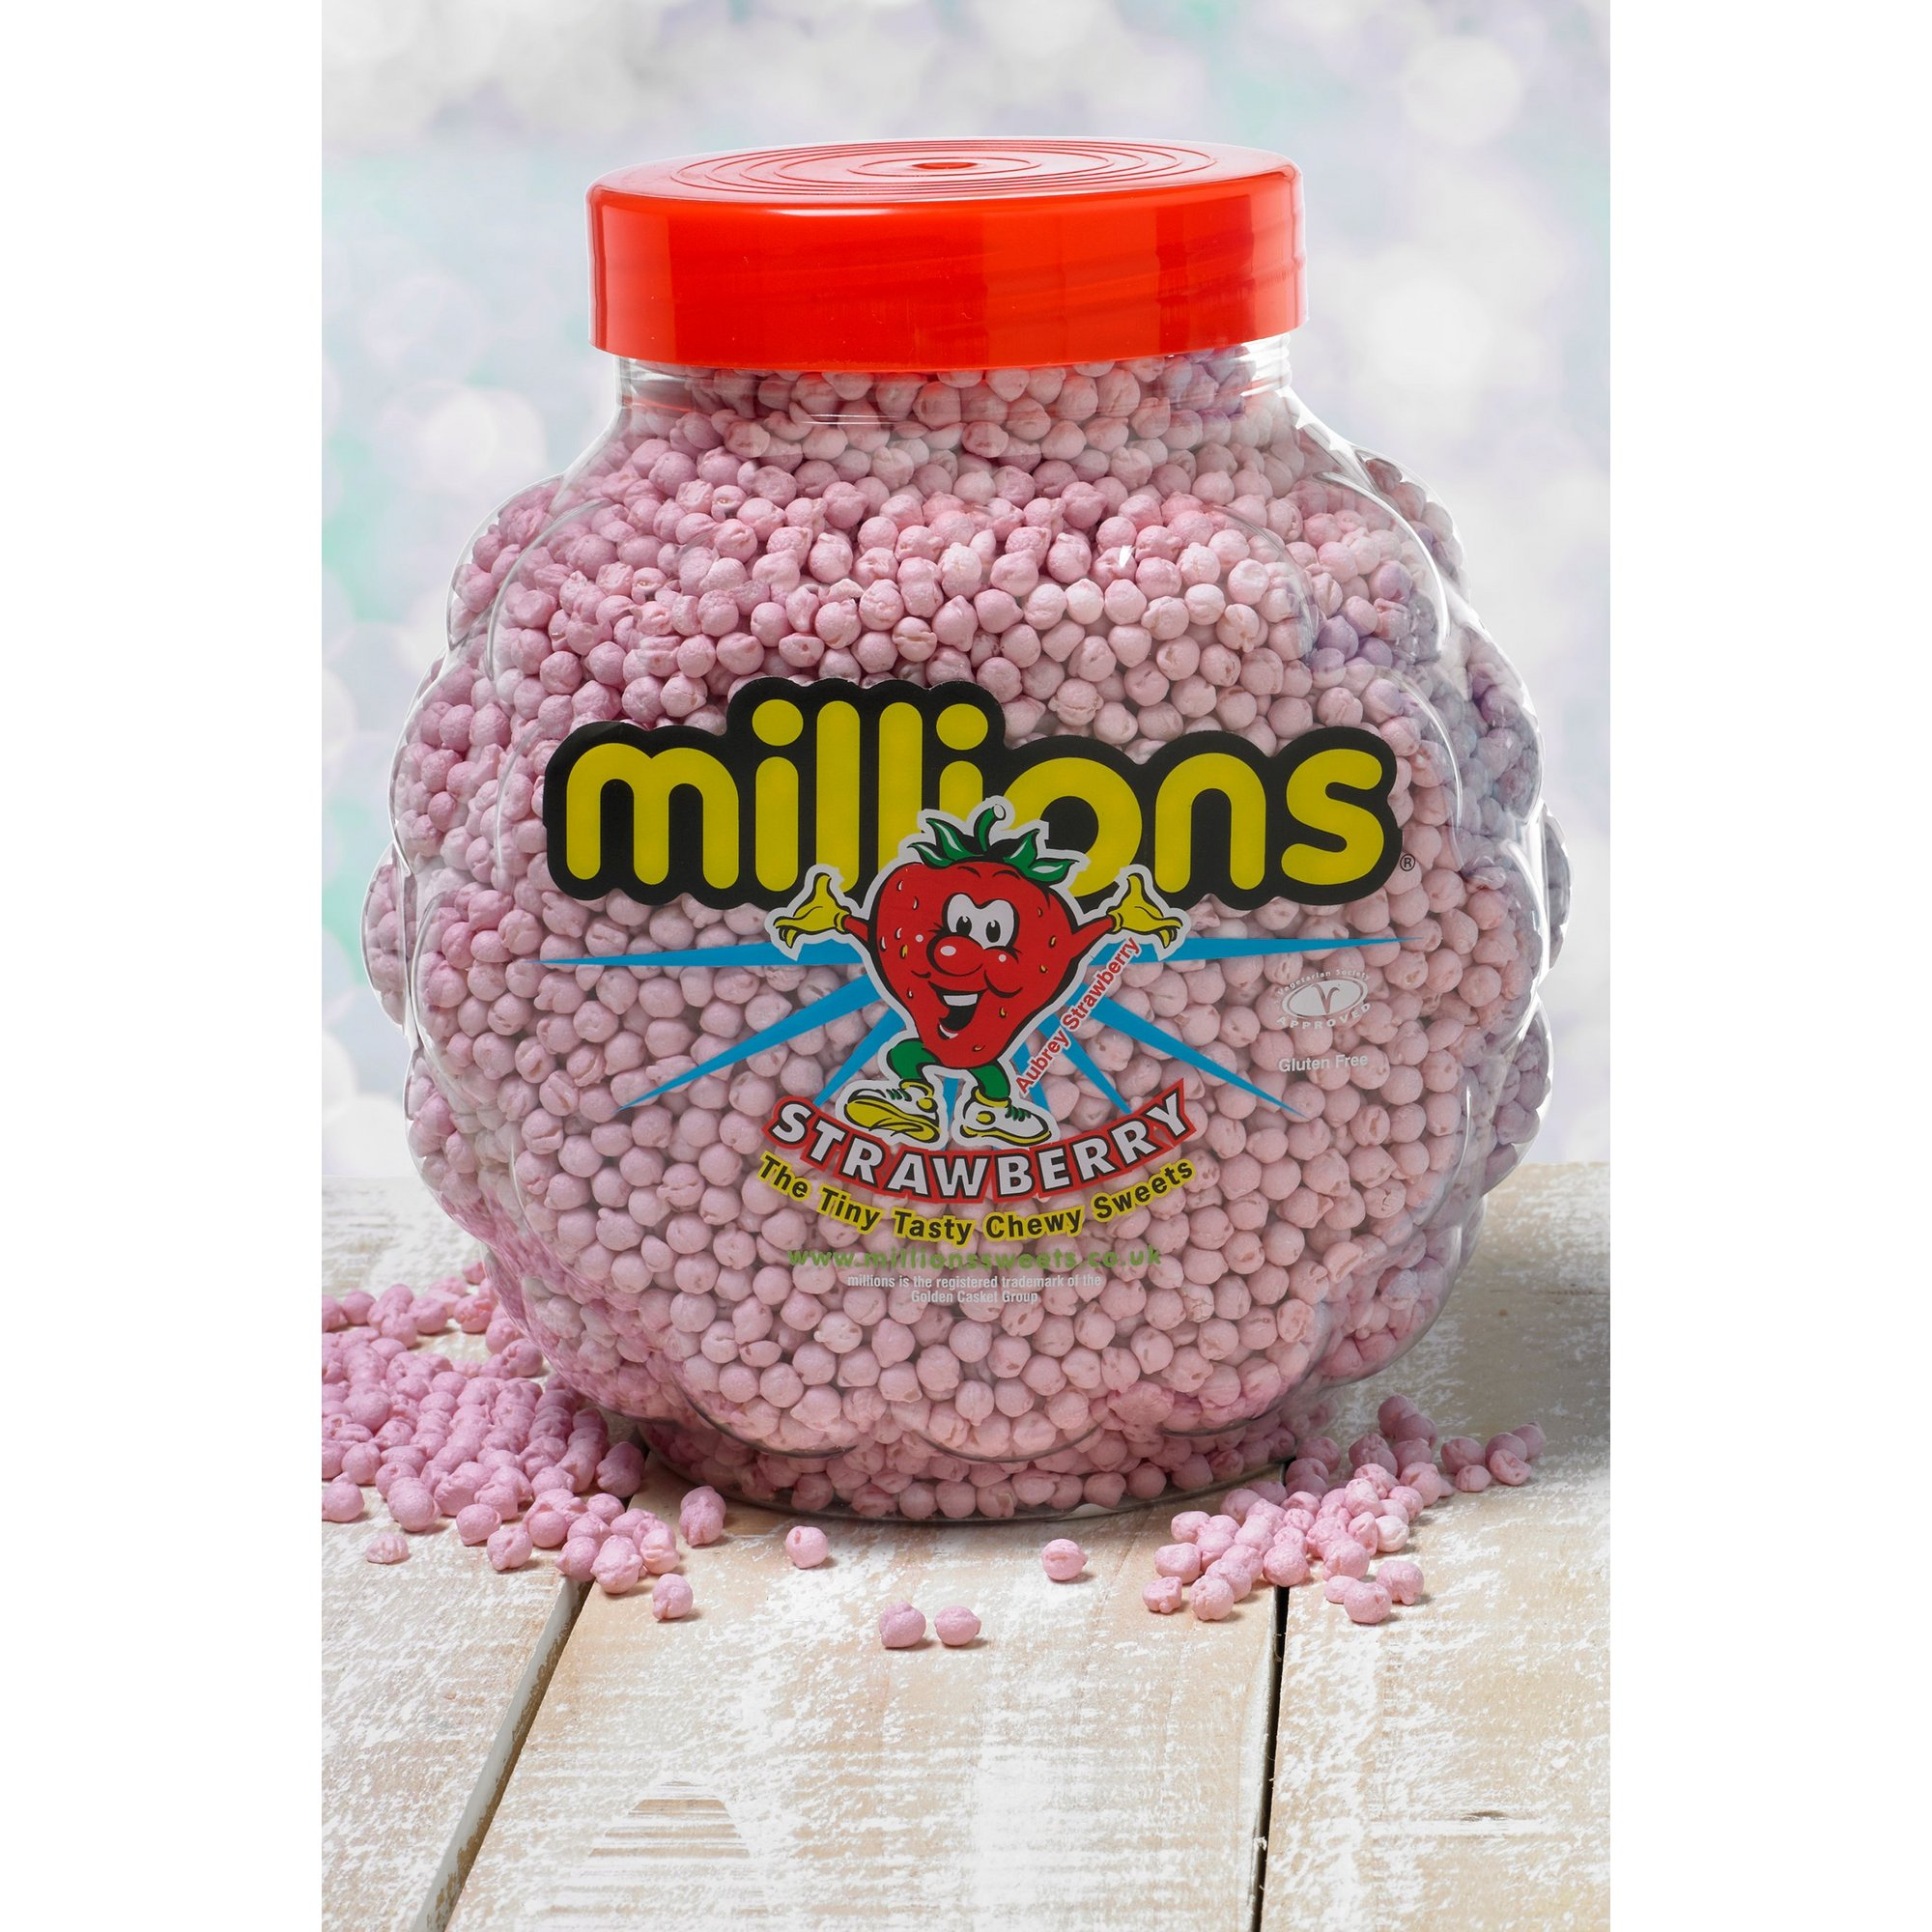 Image of Strawberry Millions Jar